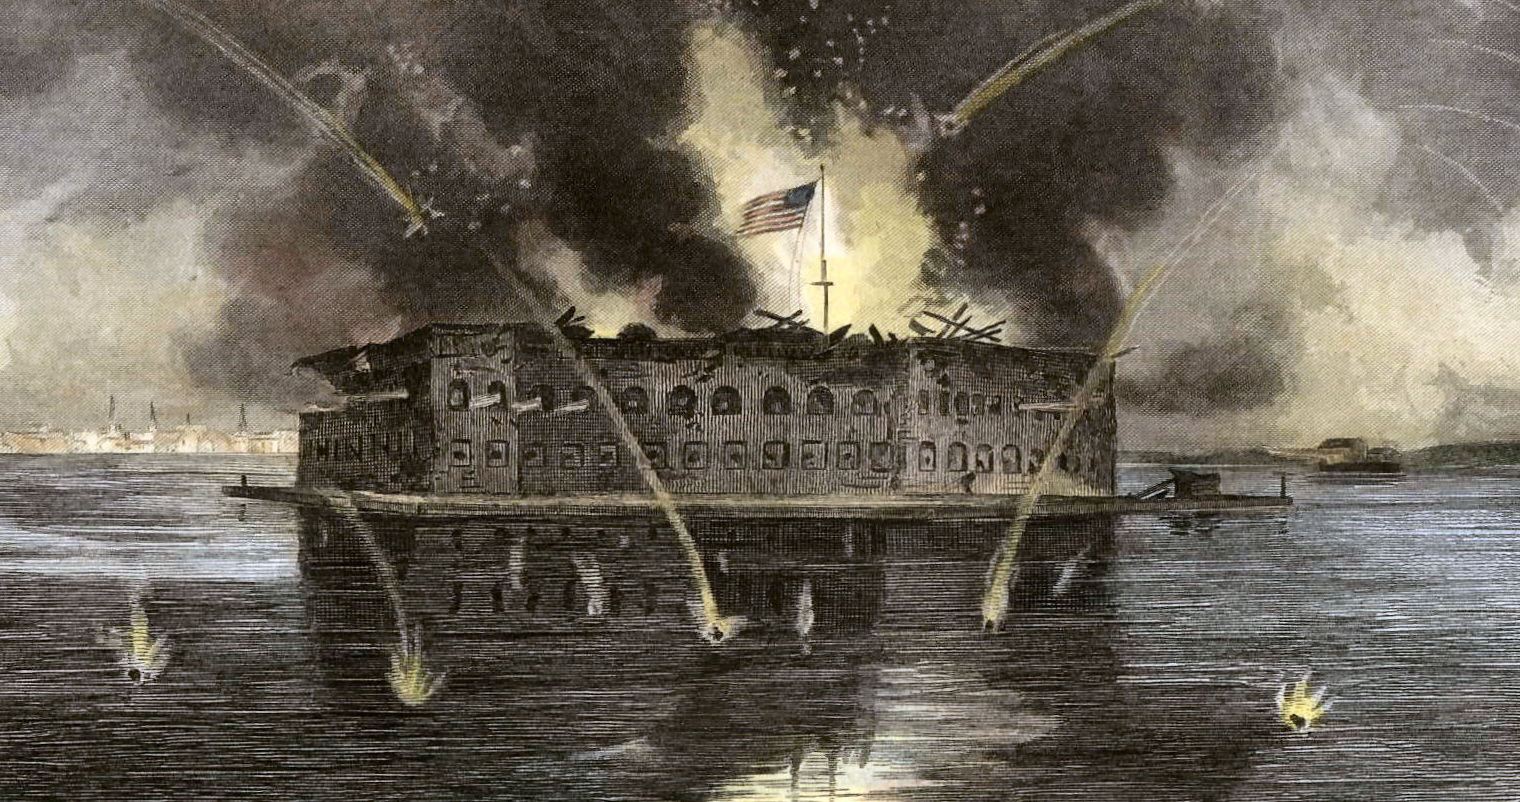 The Outbreak of War at Fort Sumter